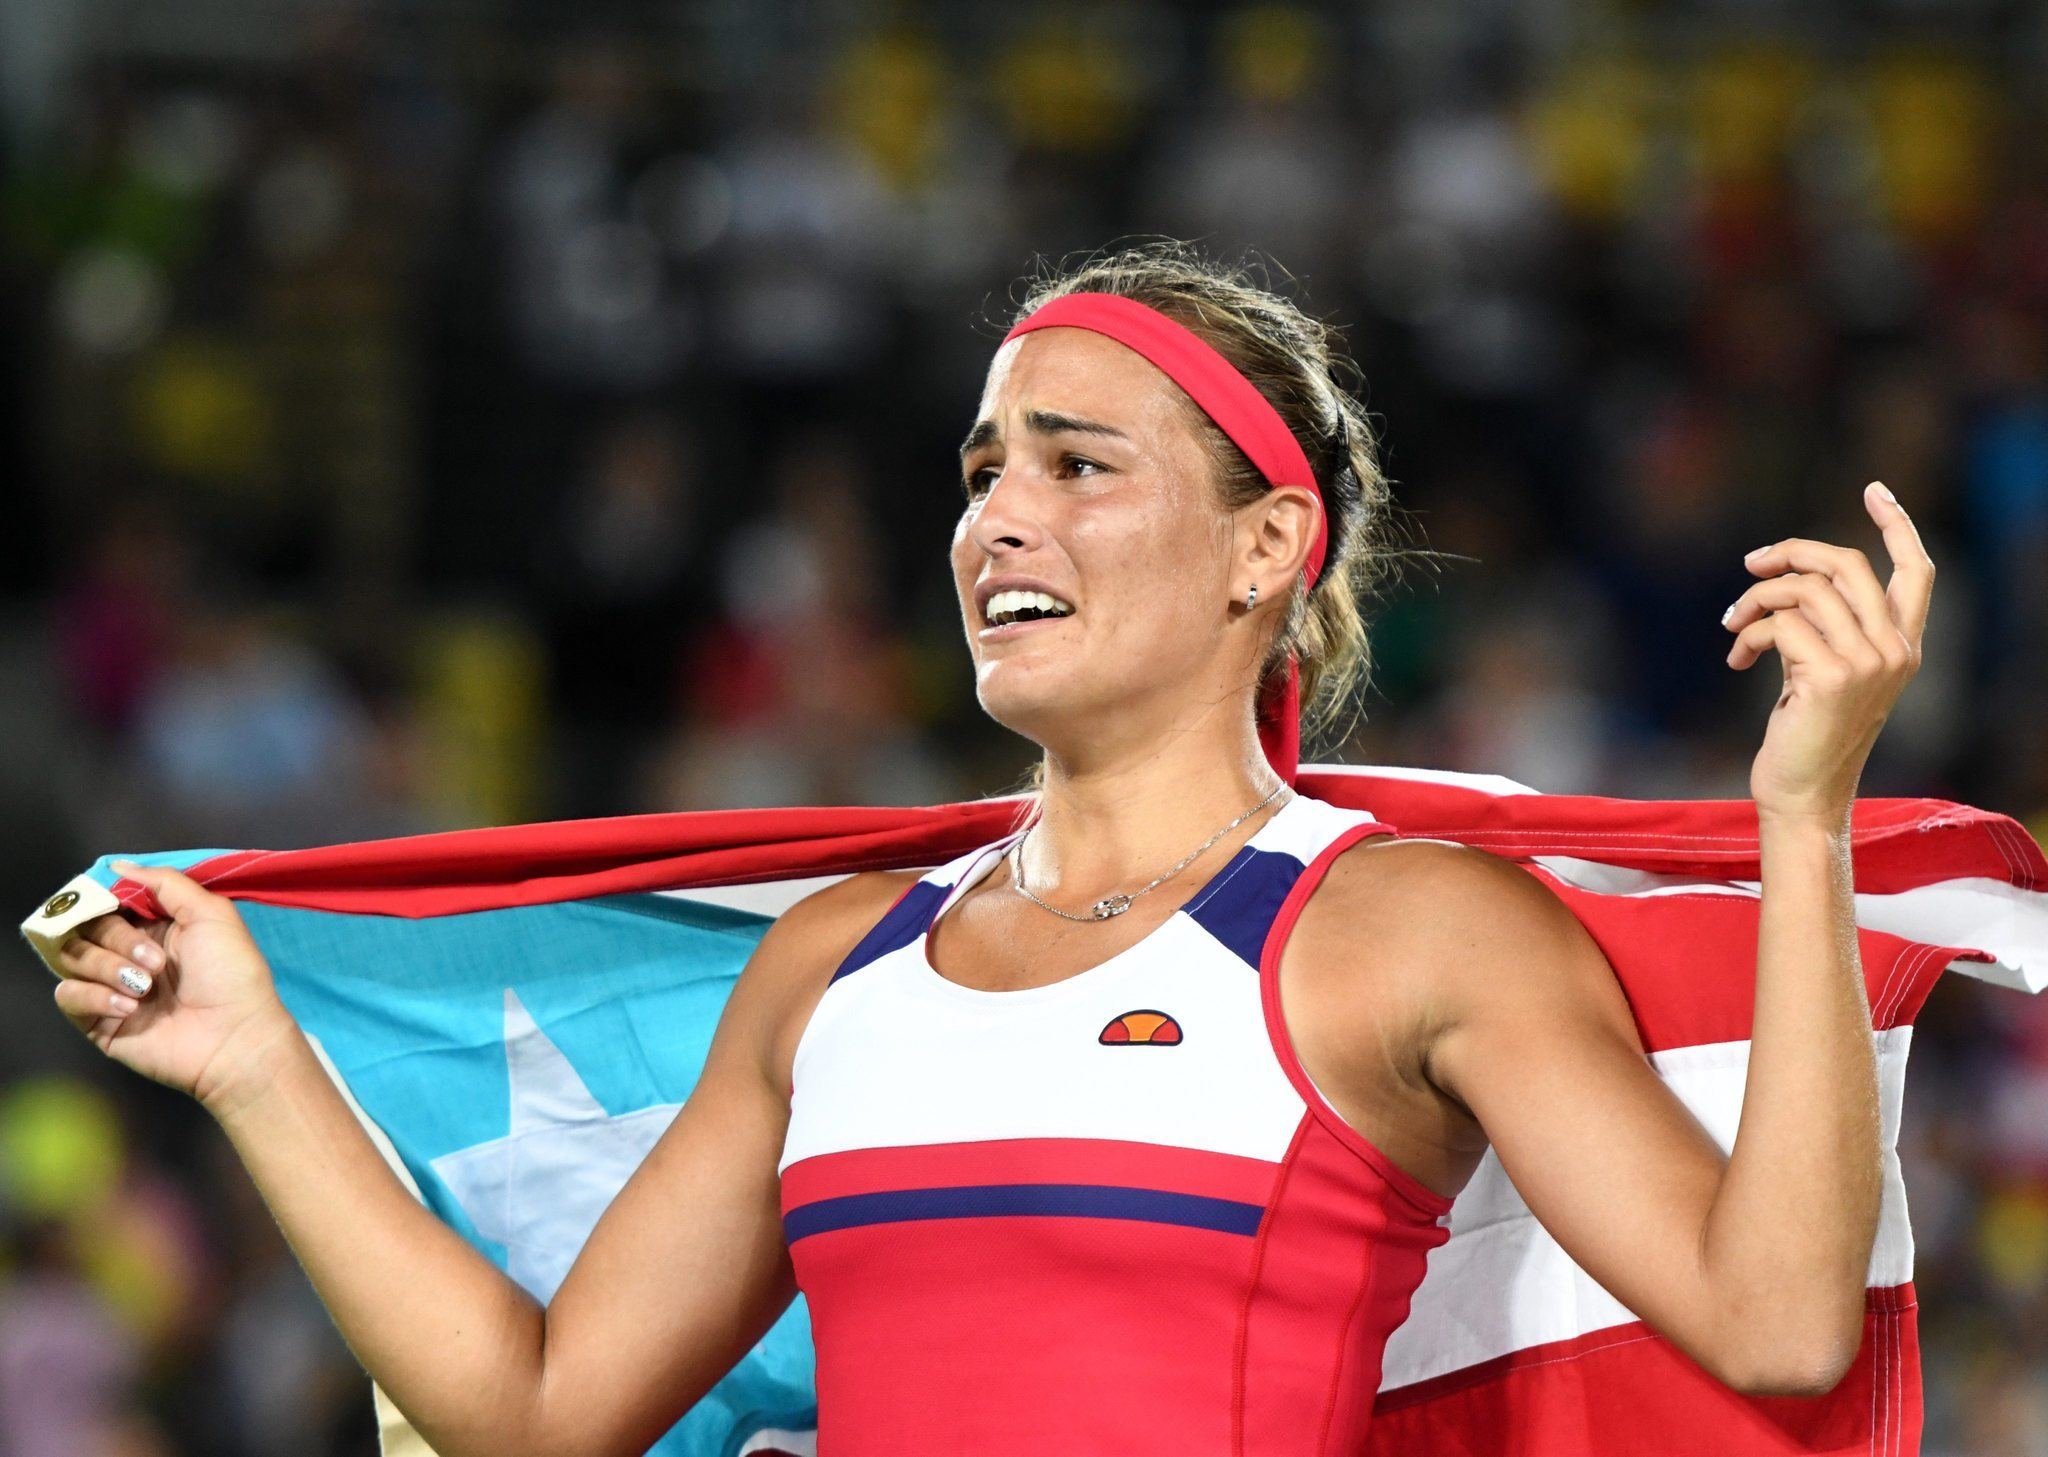 Tennis player Monica Puig wins Puerto Rico's first-ever Olympics gold medal